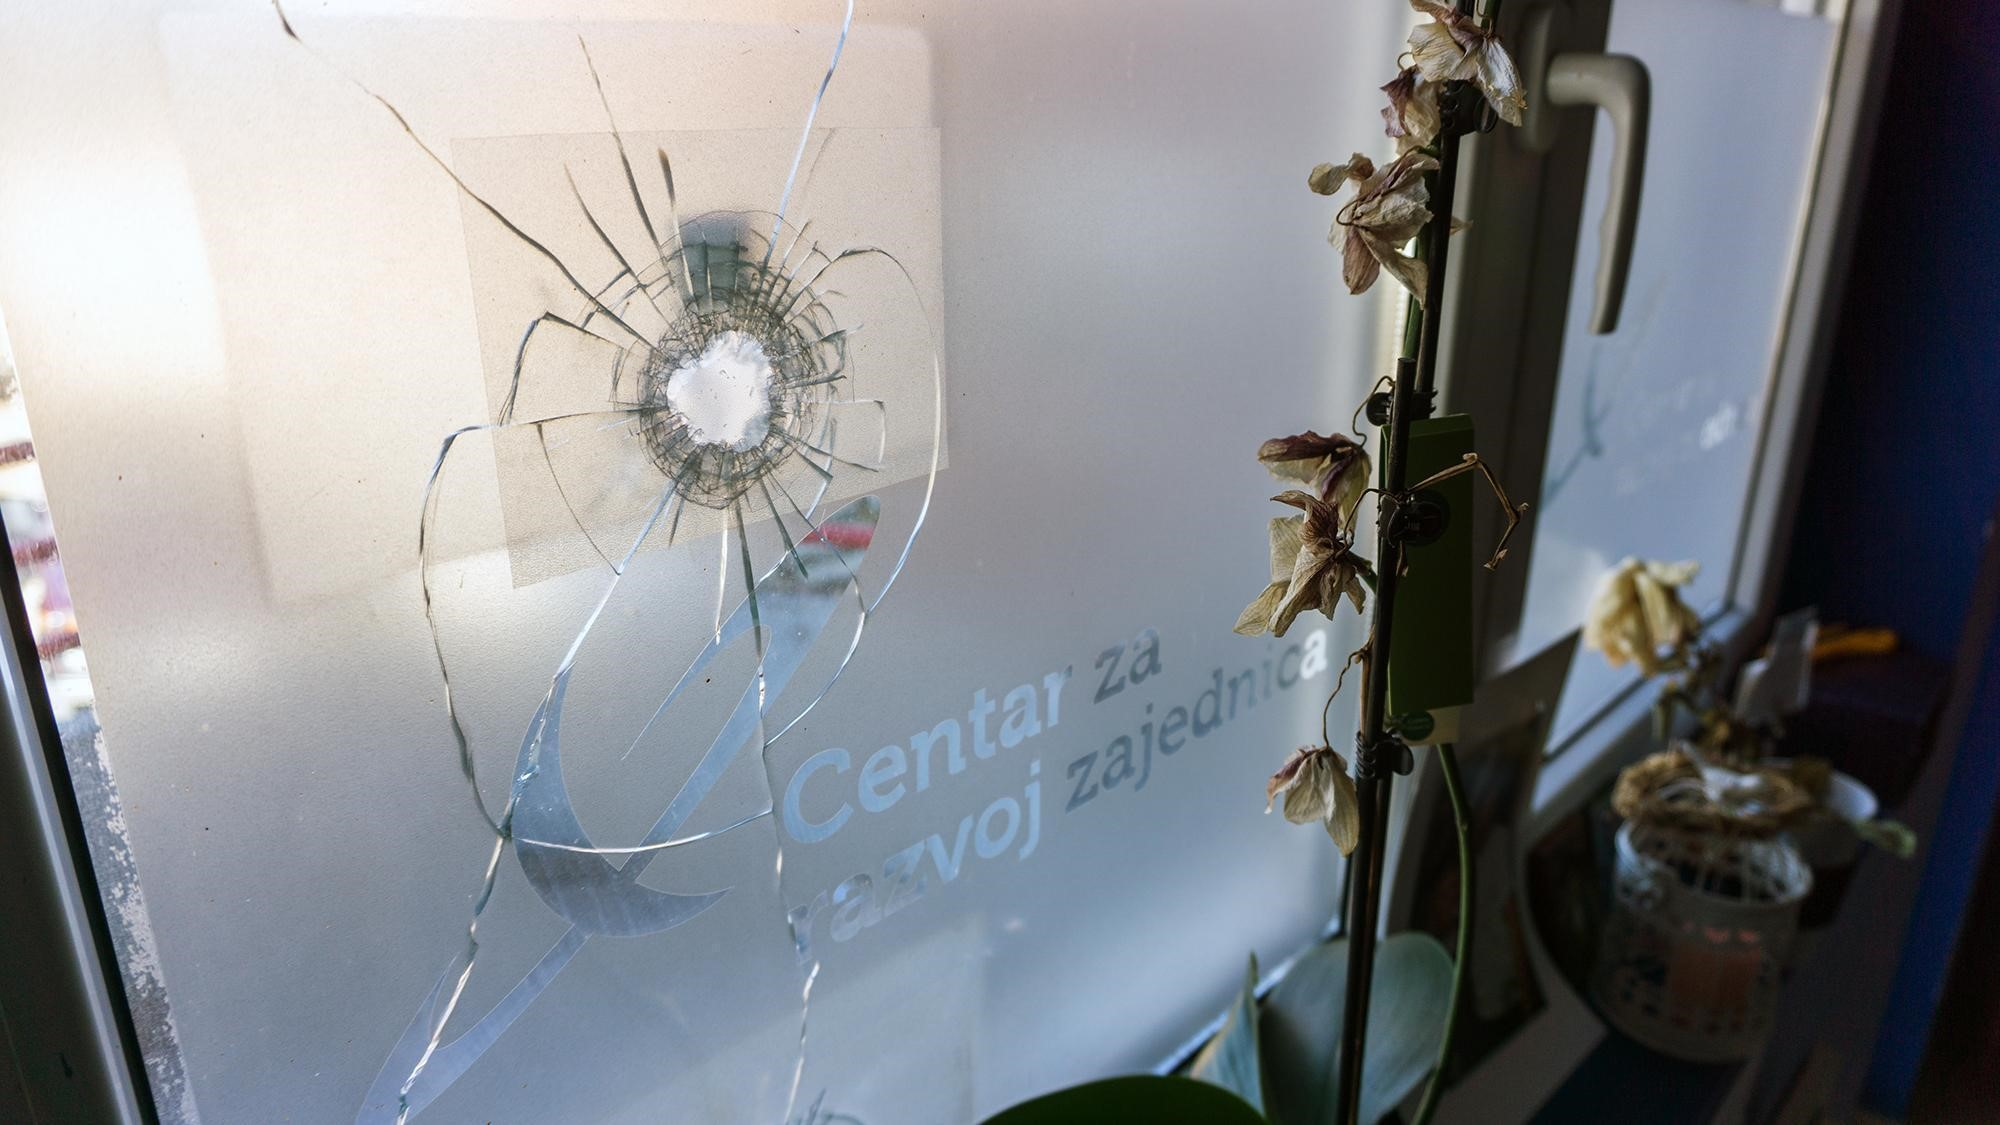 A bullet hole is seen in the window at the headquarters of independent media outlet Kossev in Mitrovica. Photo: Stefan Milivojevic